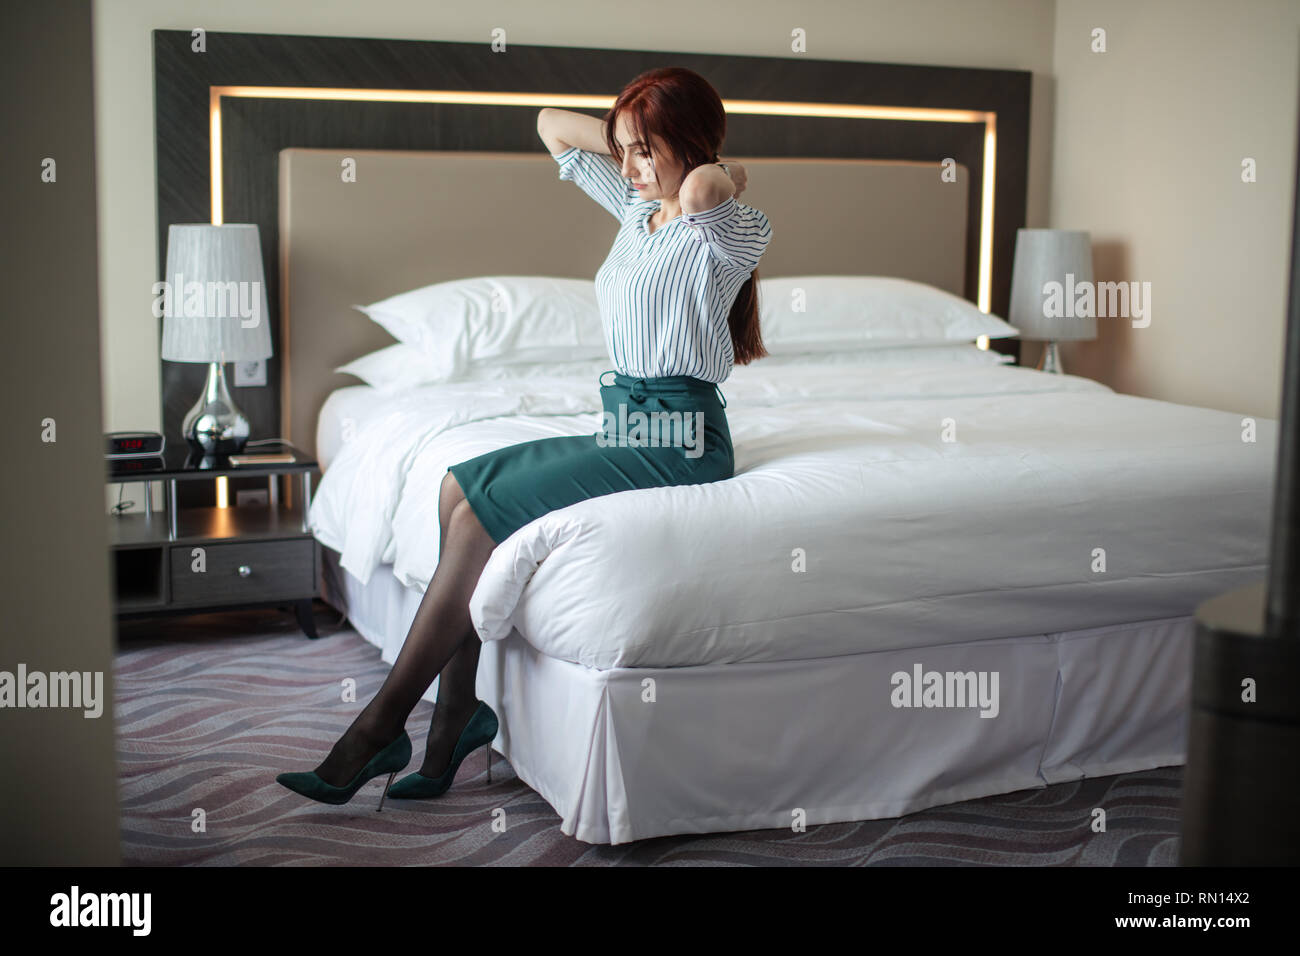 Elegantly dressed business woman in green pencil skirt and stilettos, relaxing on hotel room bed after a long business trip. - Stock Image